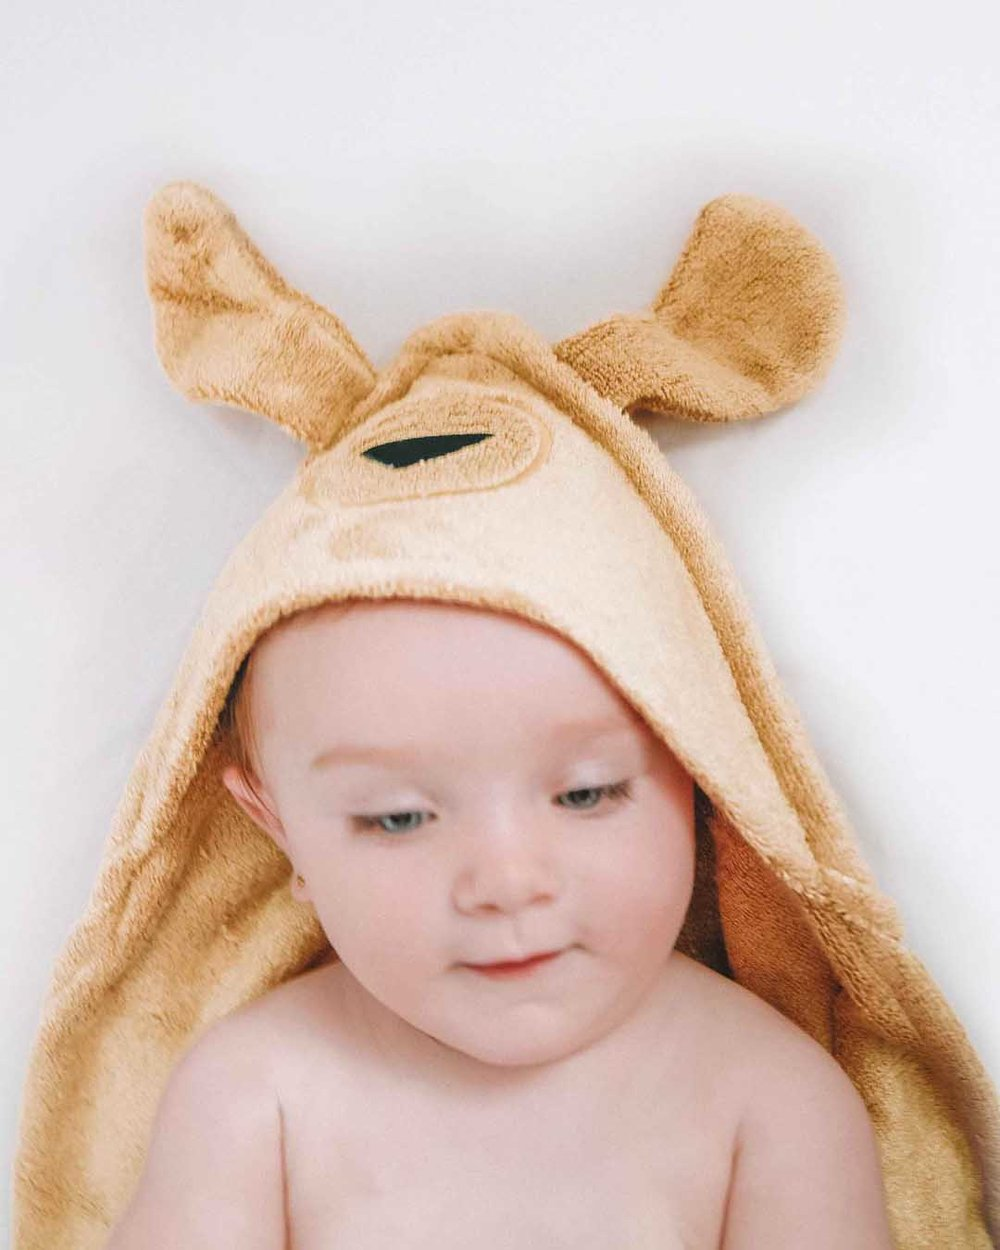 The perfect baby shower Gift!  sc 1 st  Mi Baloo : gift ideas for newborns - princetonregatta.org